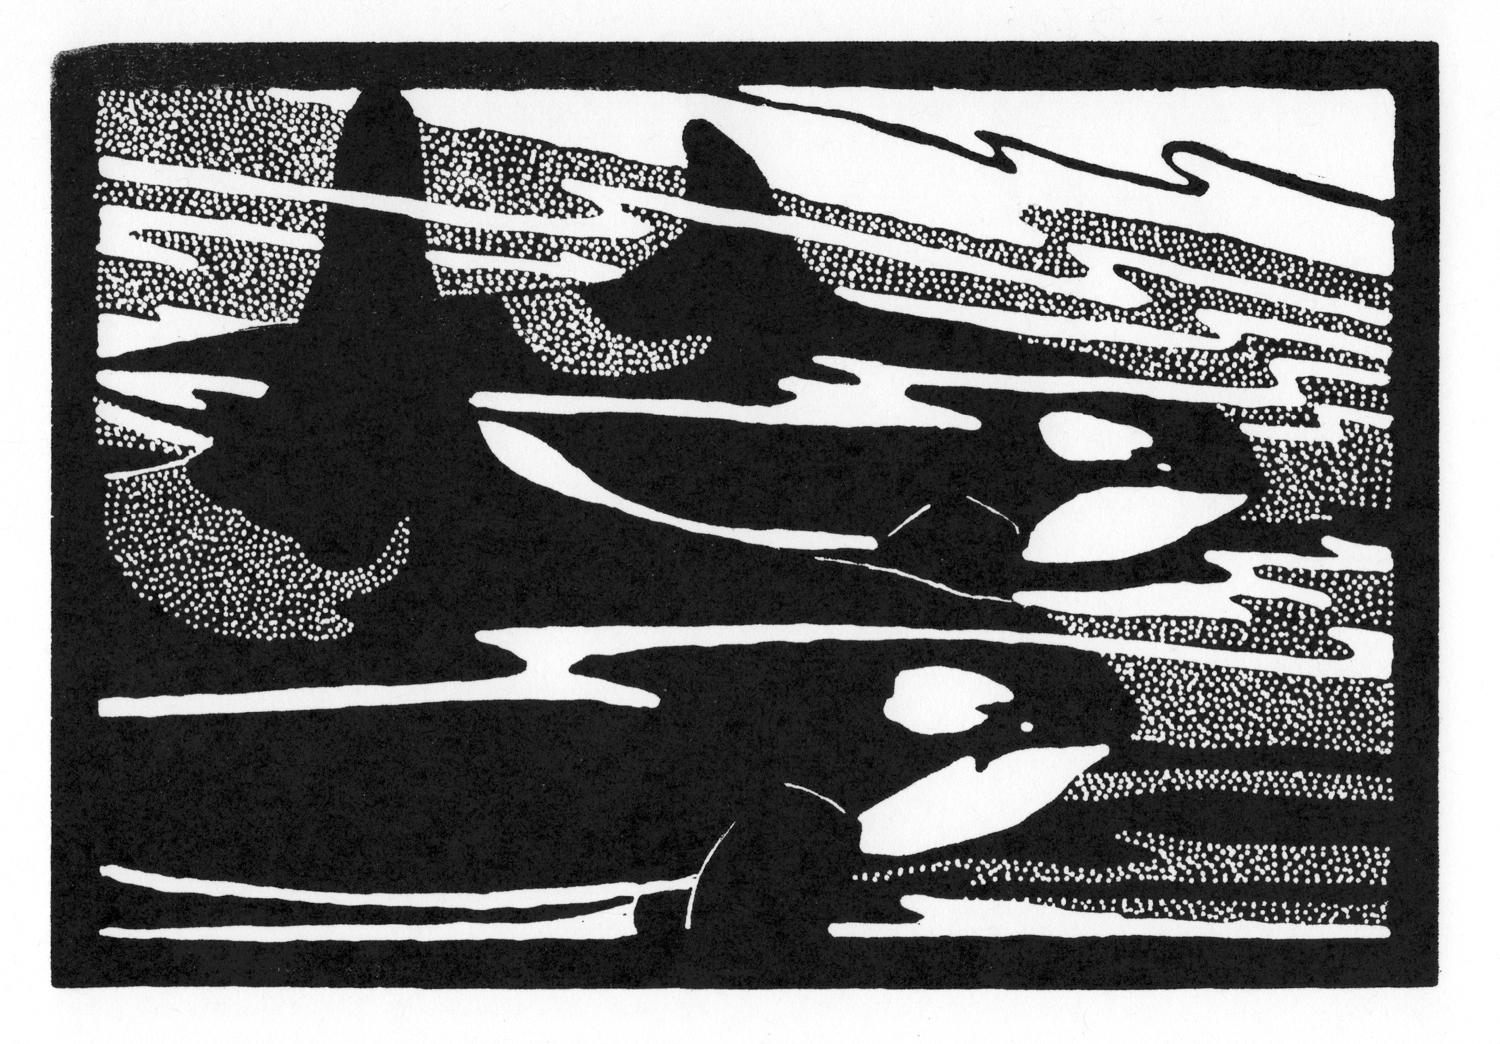 Orcas • © Fred Montague  $48 • image 8 x 5.5 • mat 14 x 11  Edition size: 88 • status: available